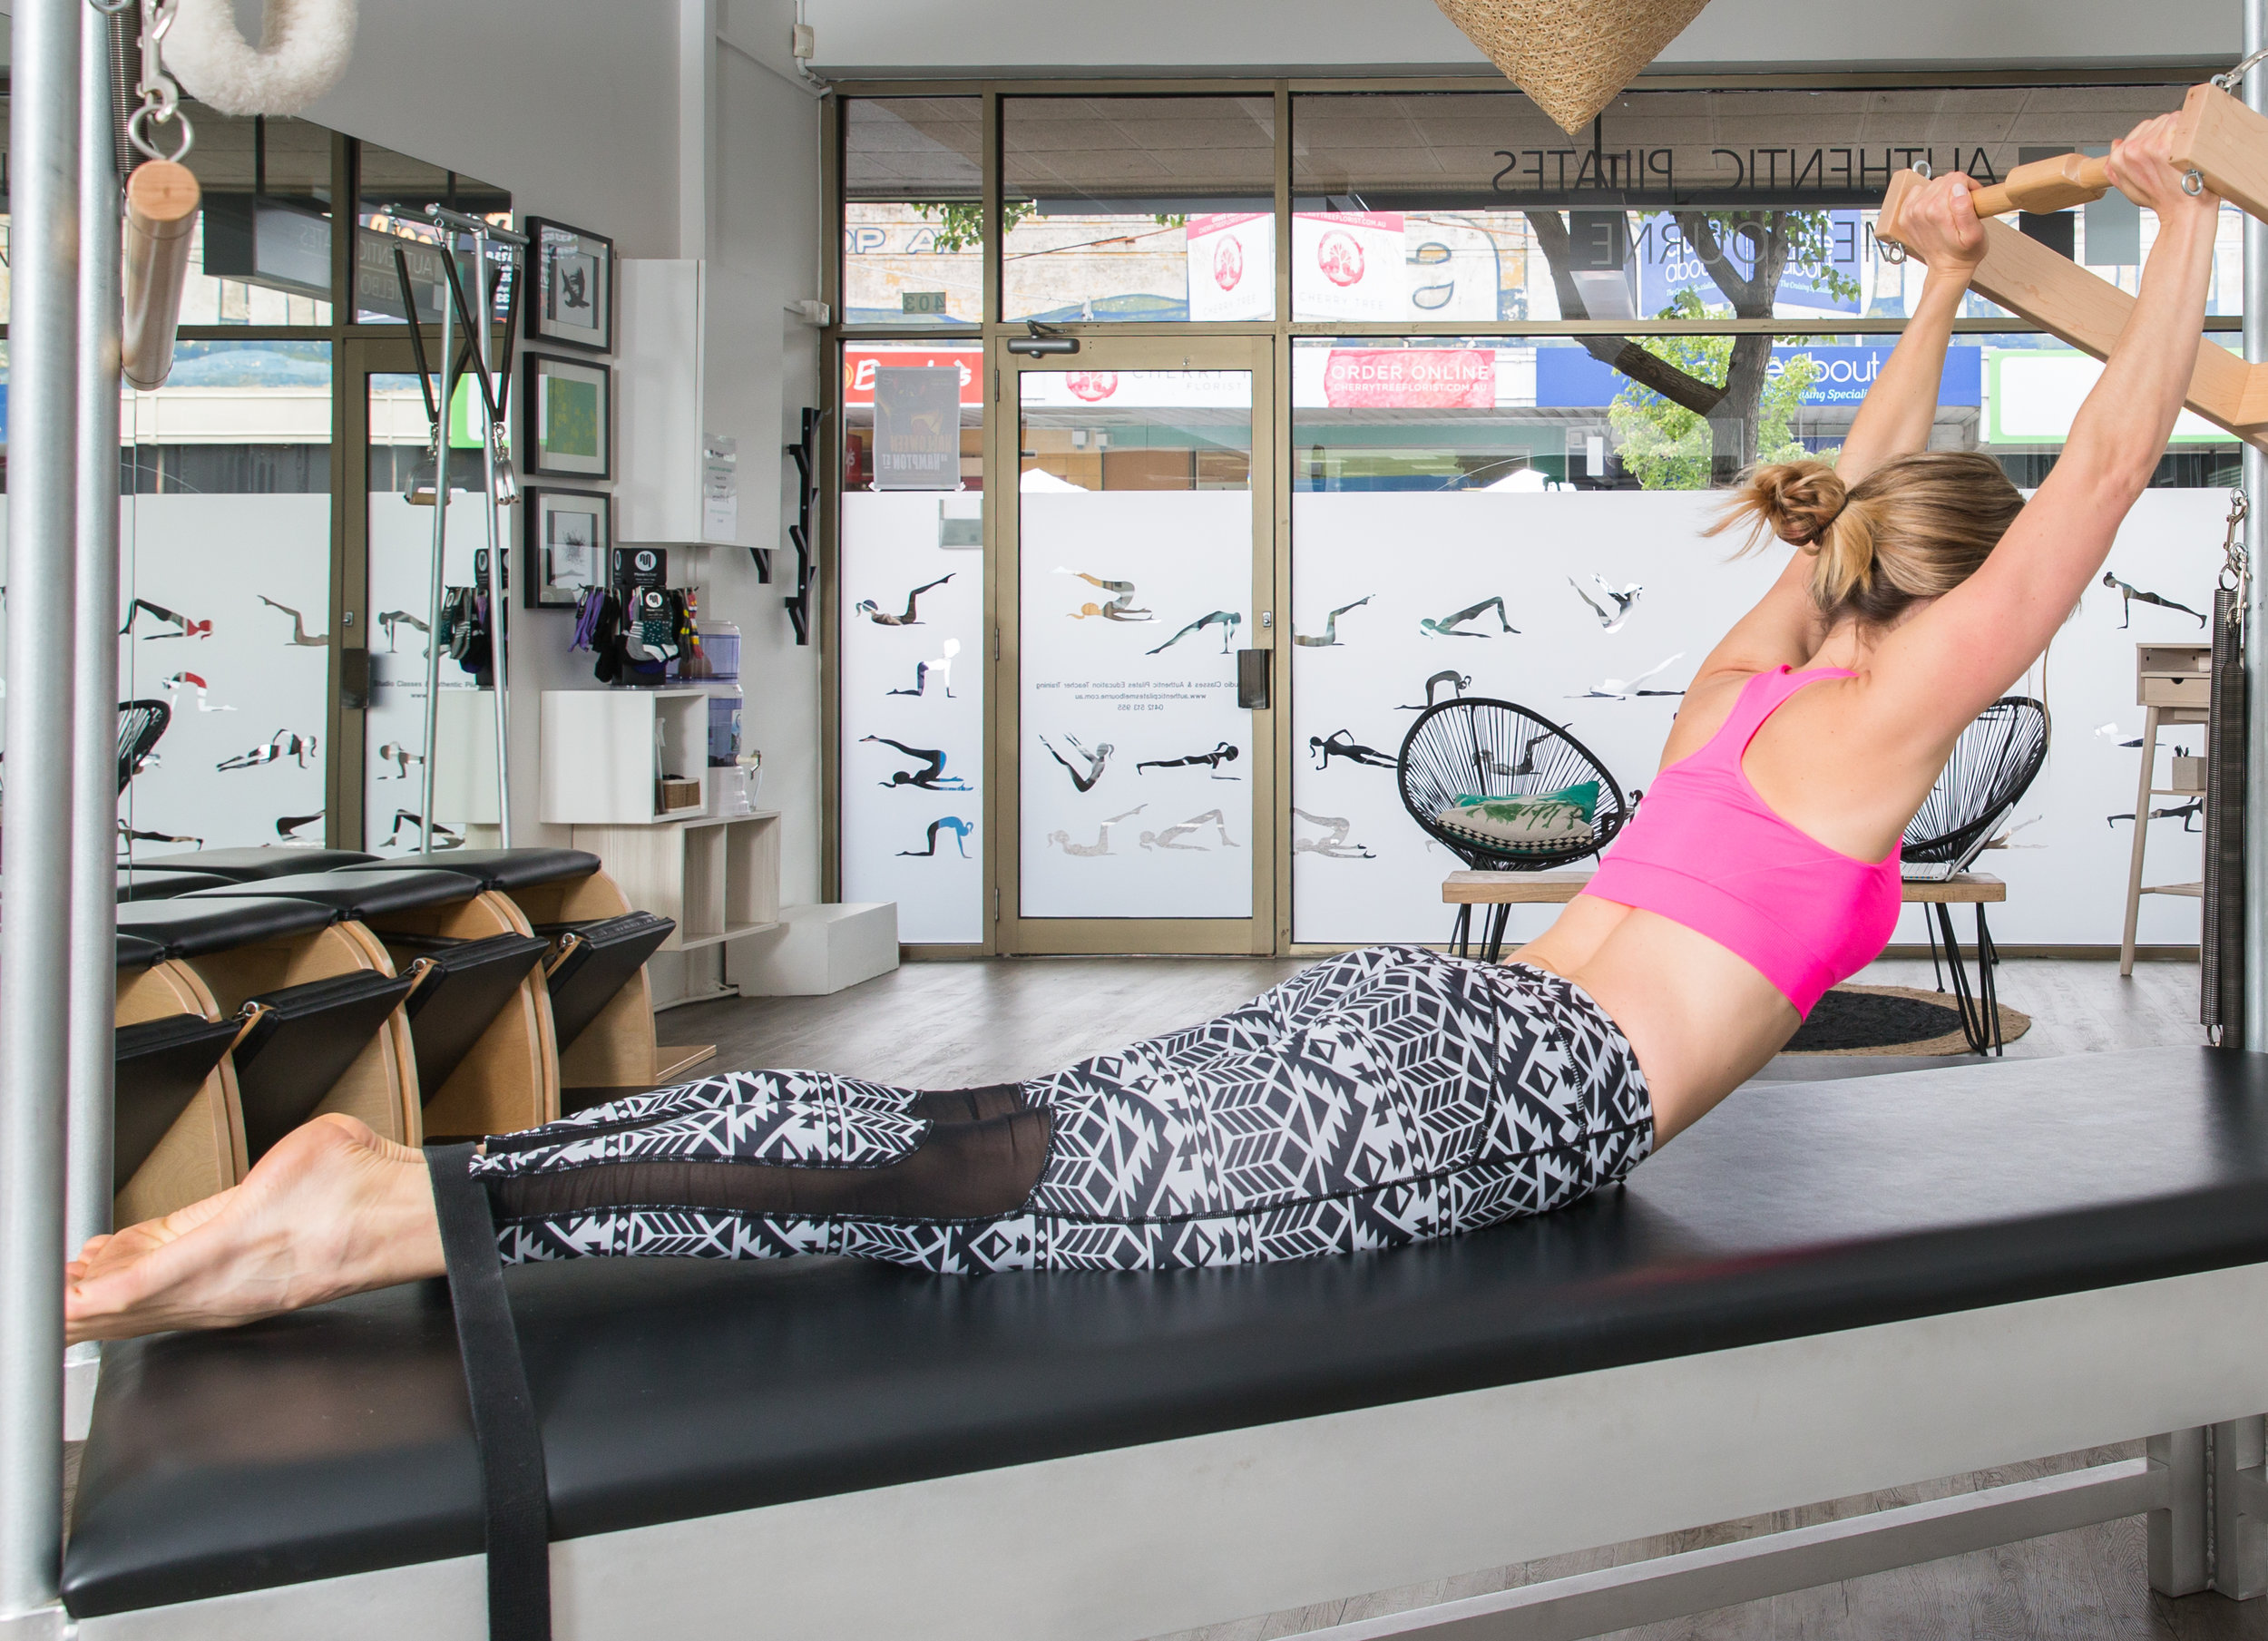 Image courtesy of @neetaphotography on location at Authentic Pilates Melbourne, Hampton, Melbourne.